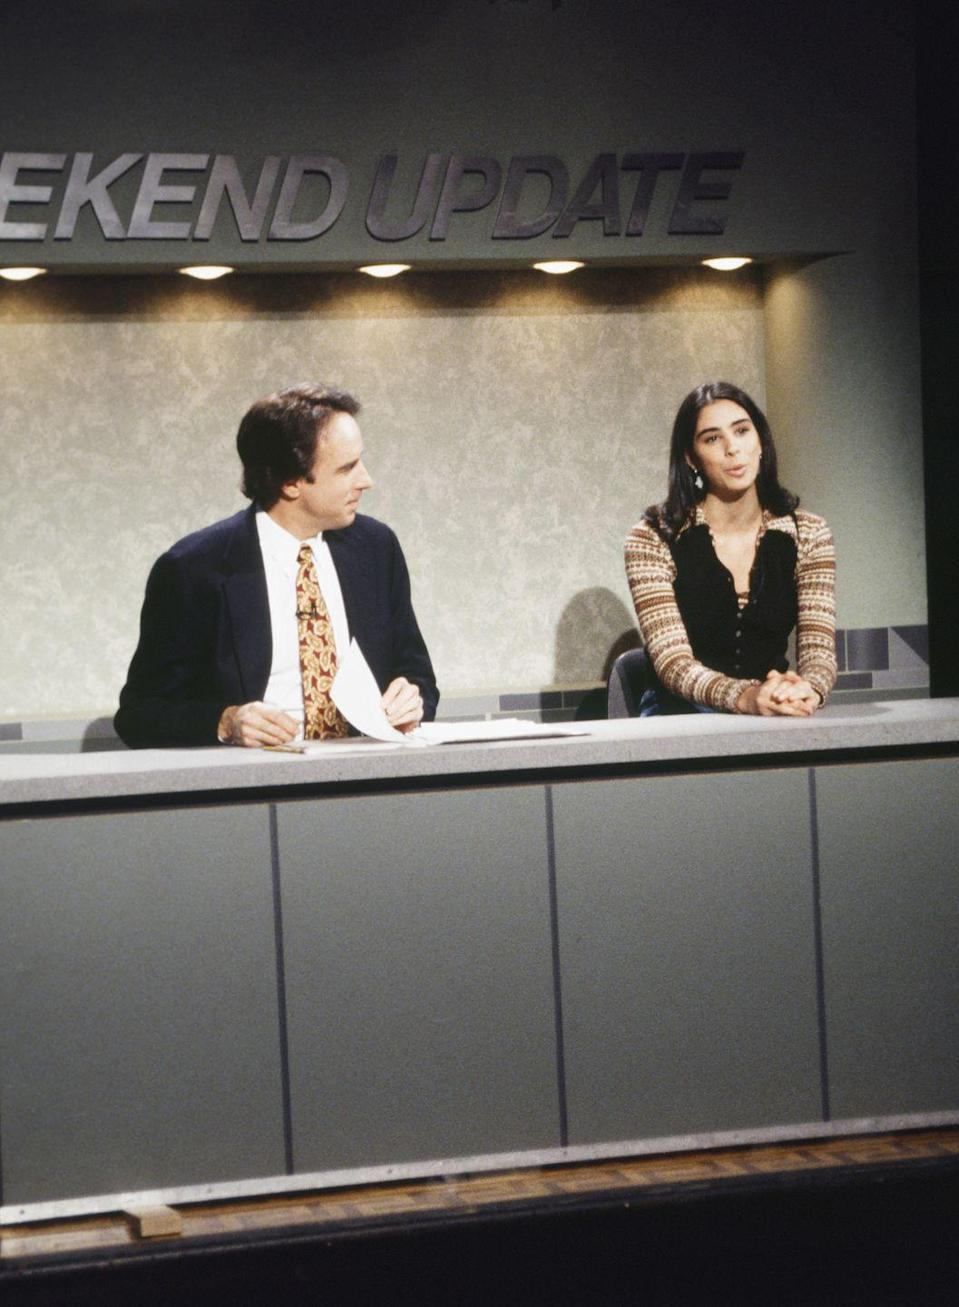 <p>Given her flair for pushing boundaries, it's surprising that Sarah Silverman's stint on <em>SNL </em>was largely unremarkable. She appeared in only a handful of sketches and not one of the skits she wrote ever made it to air.</p>